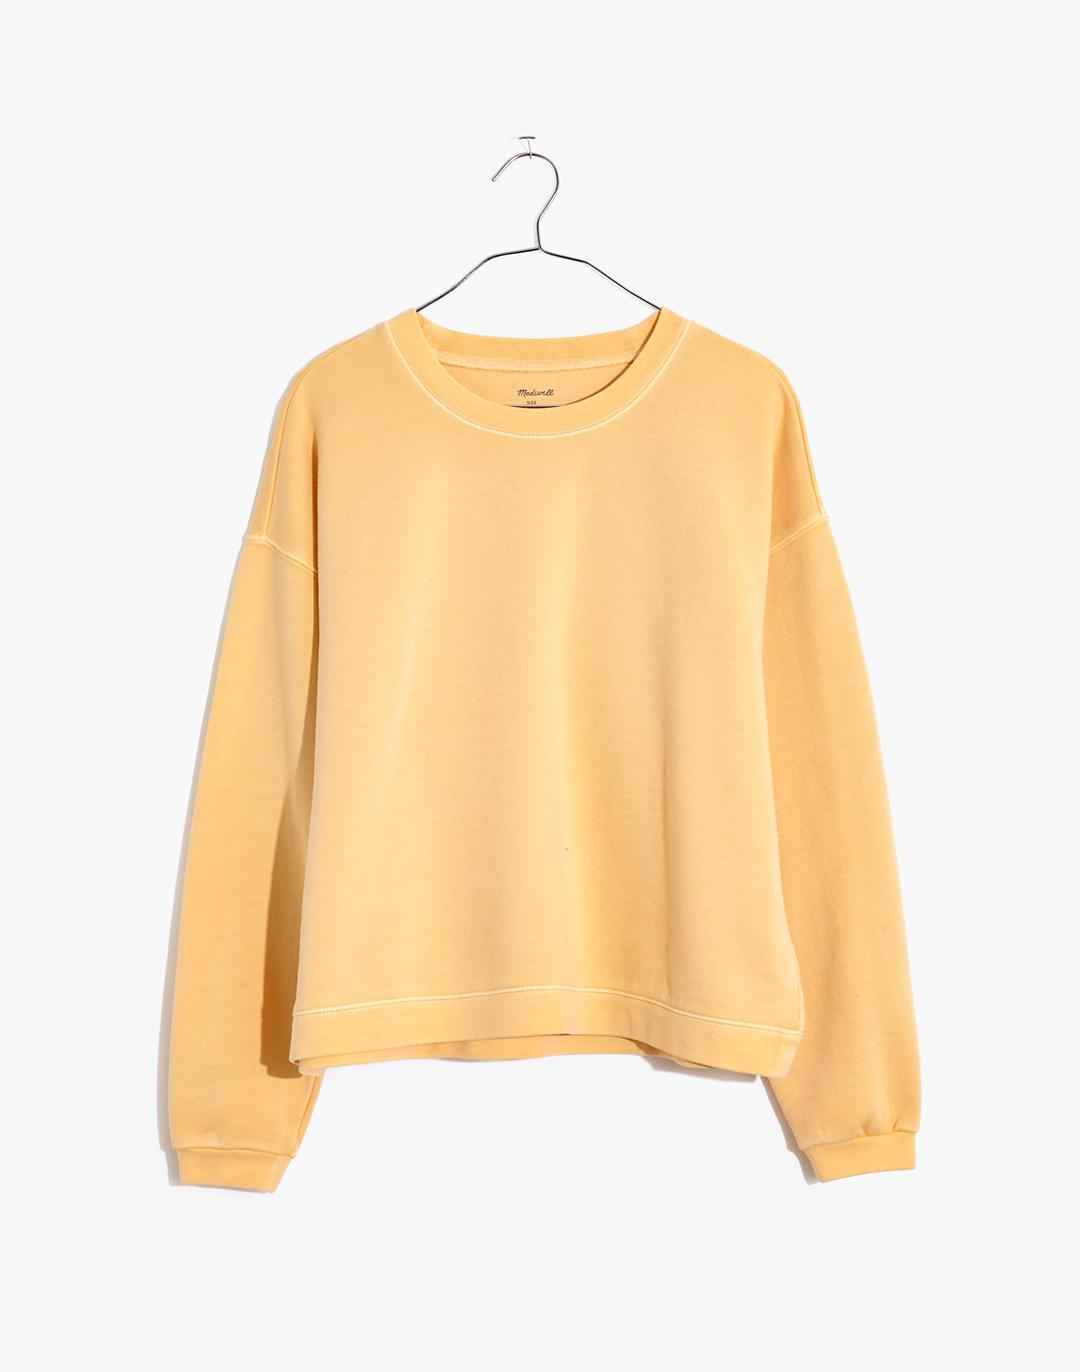 (Re)sourced Cotton Swing Sweatshirt